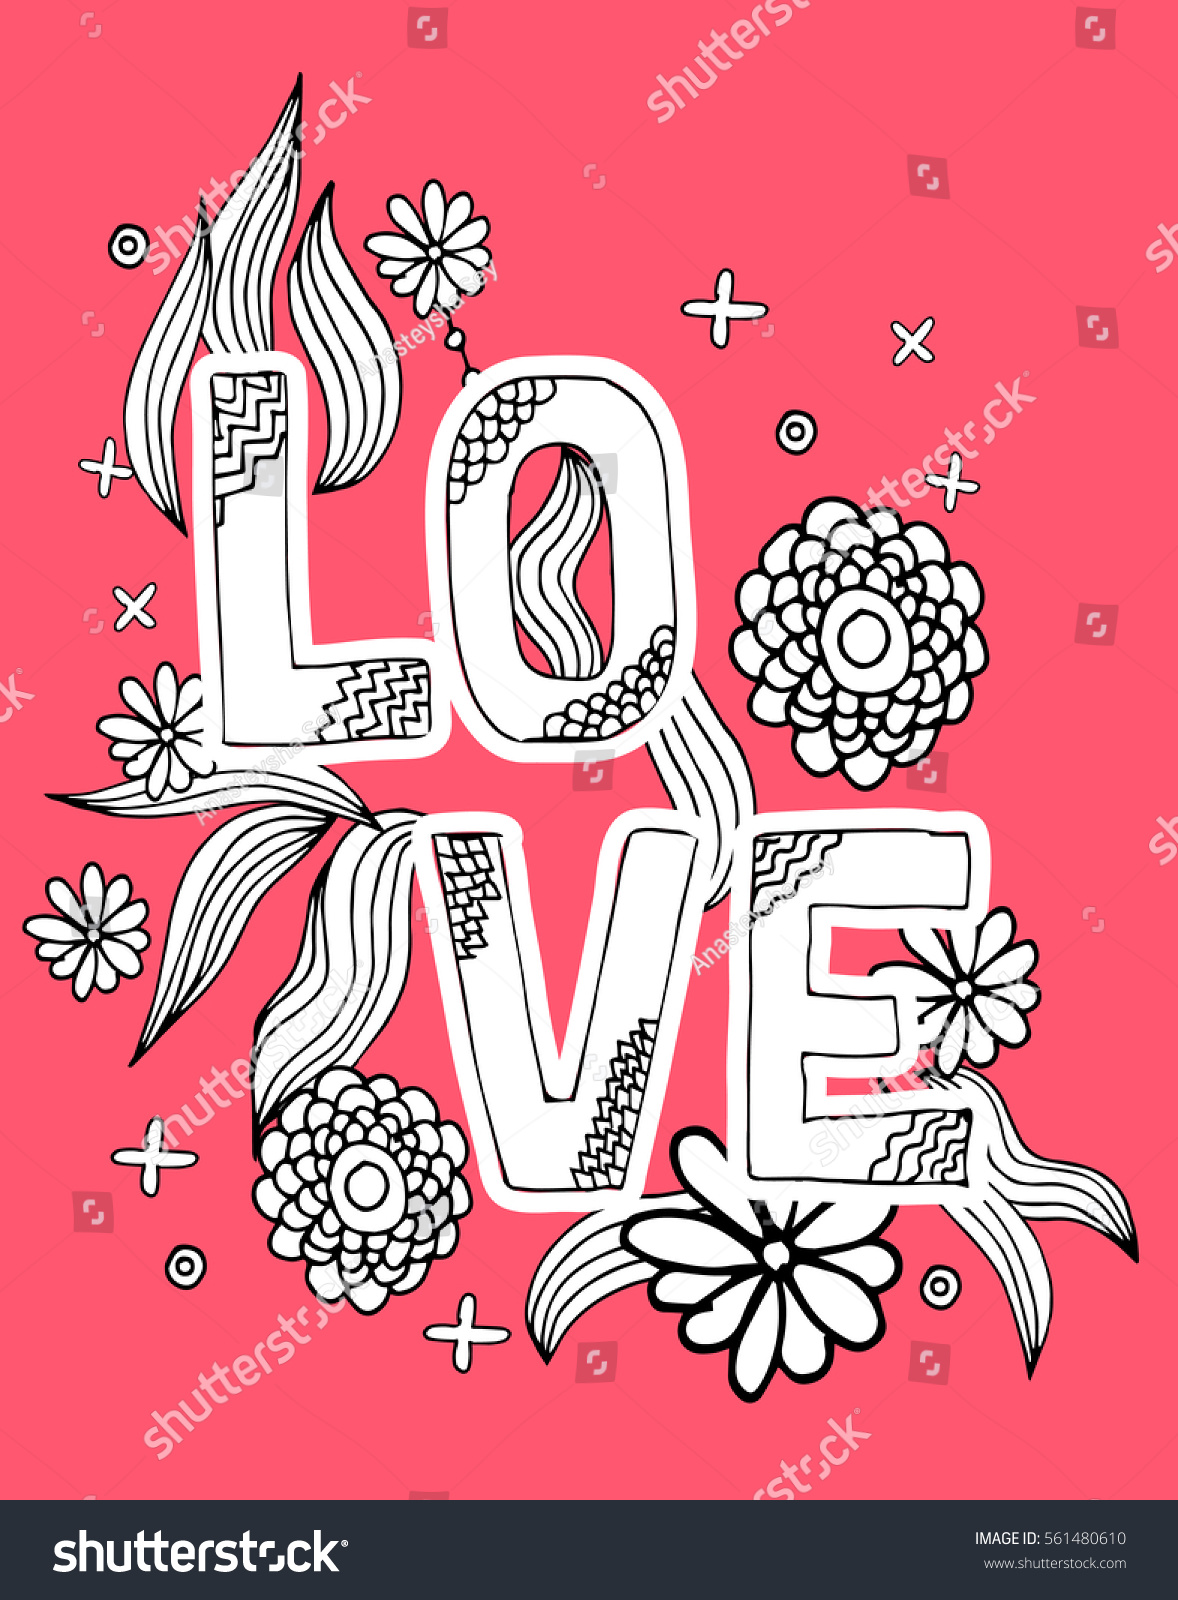 Coloring Page Word Love Flowers Ornament Stock Photo (Photo, Vector ...